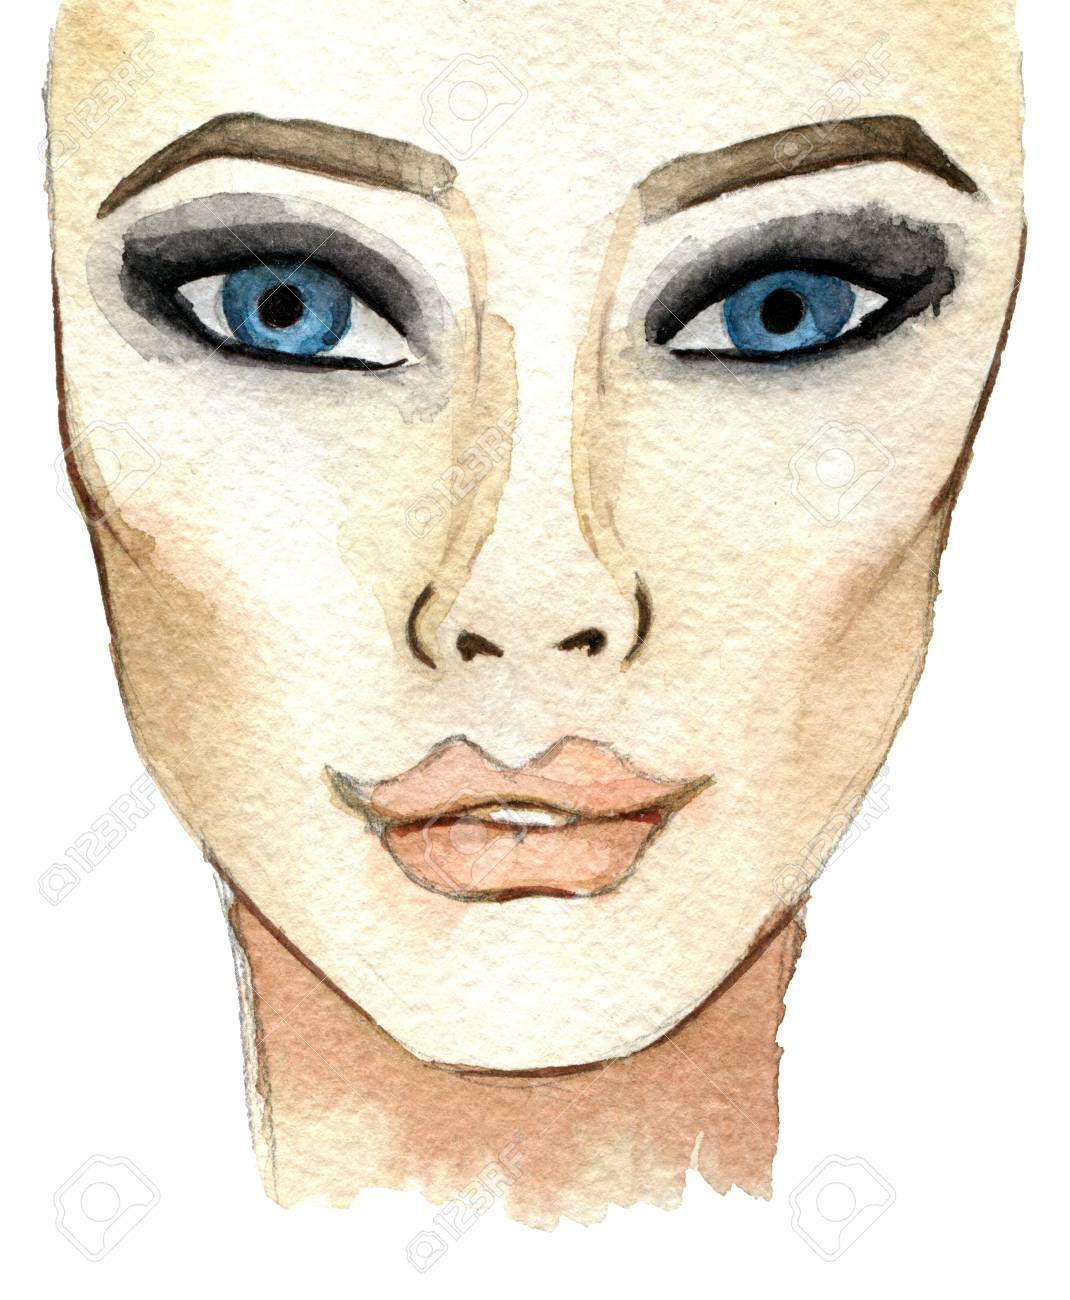 Watercolor Sketch Of Woman Face Fashion Illustration Isolated Stock Photo Picture And Royalty Free Image Image 79401195